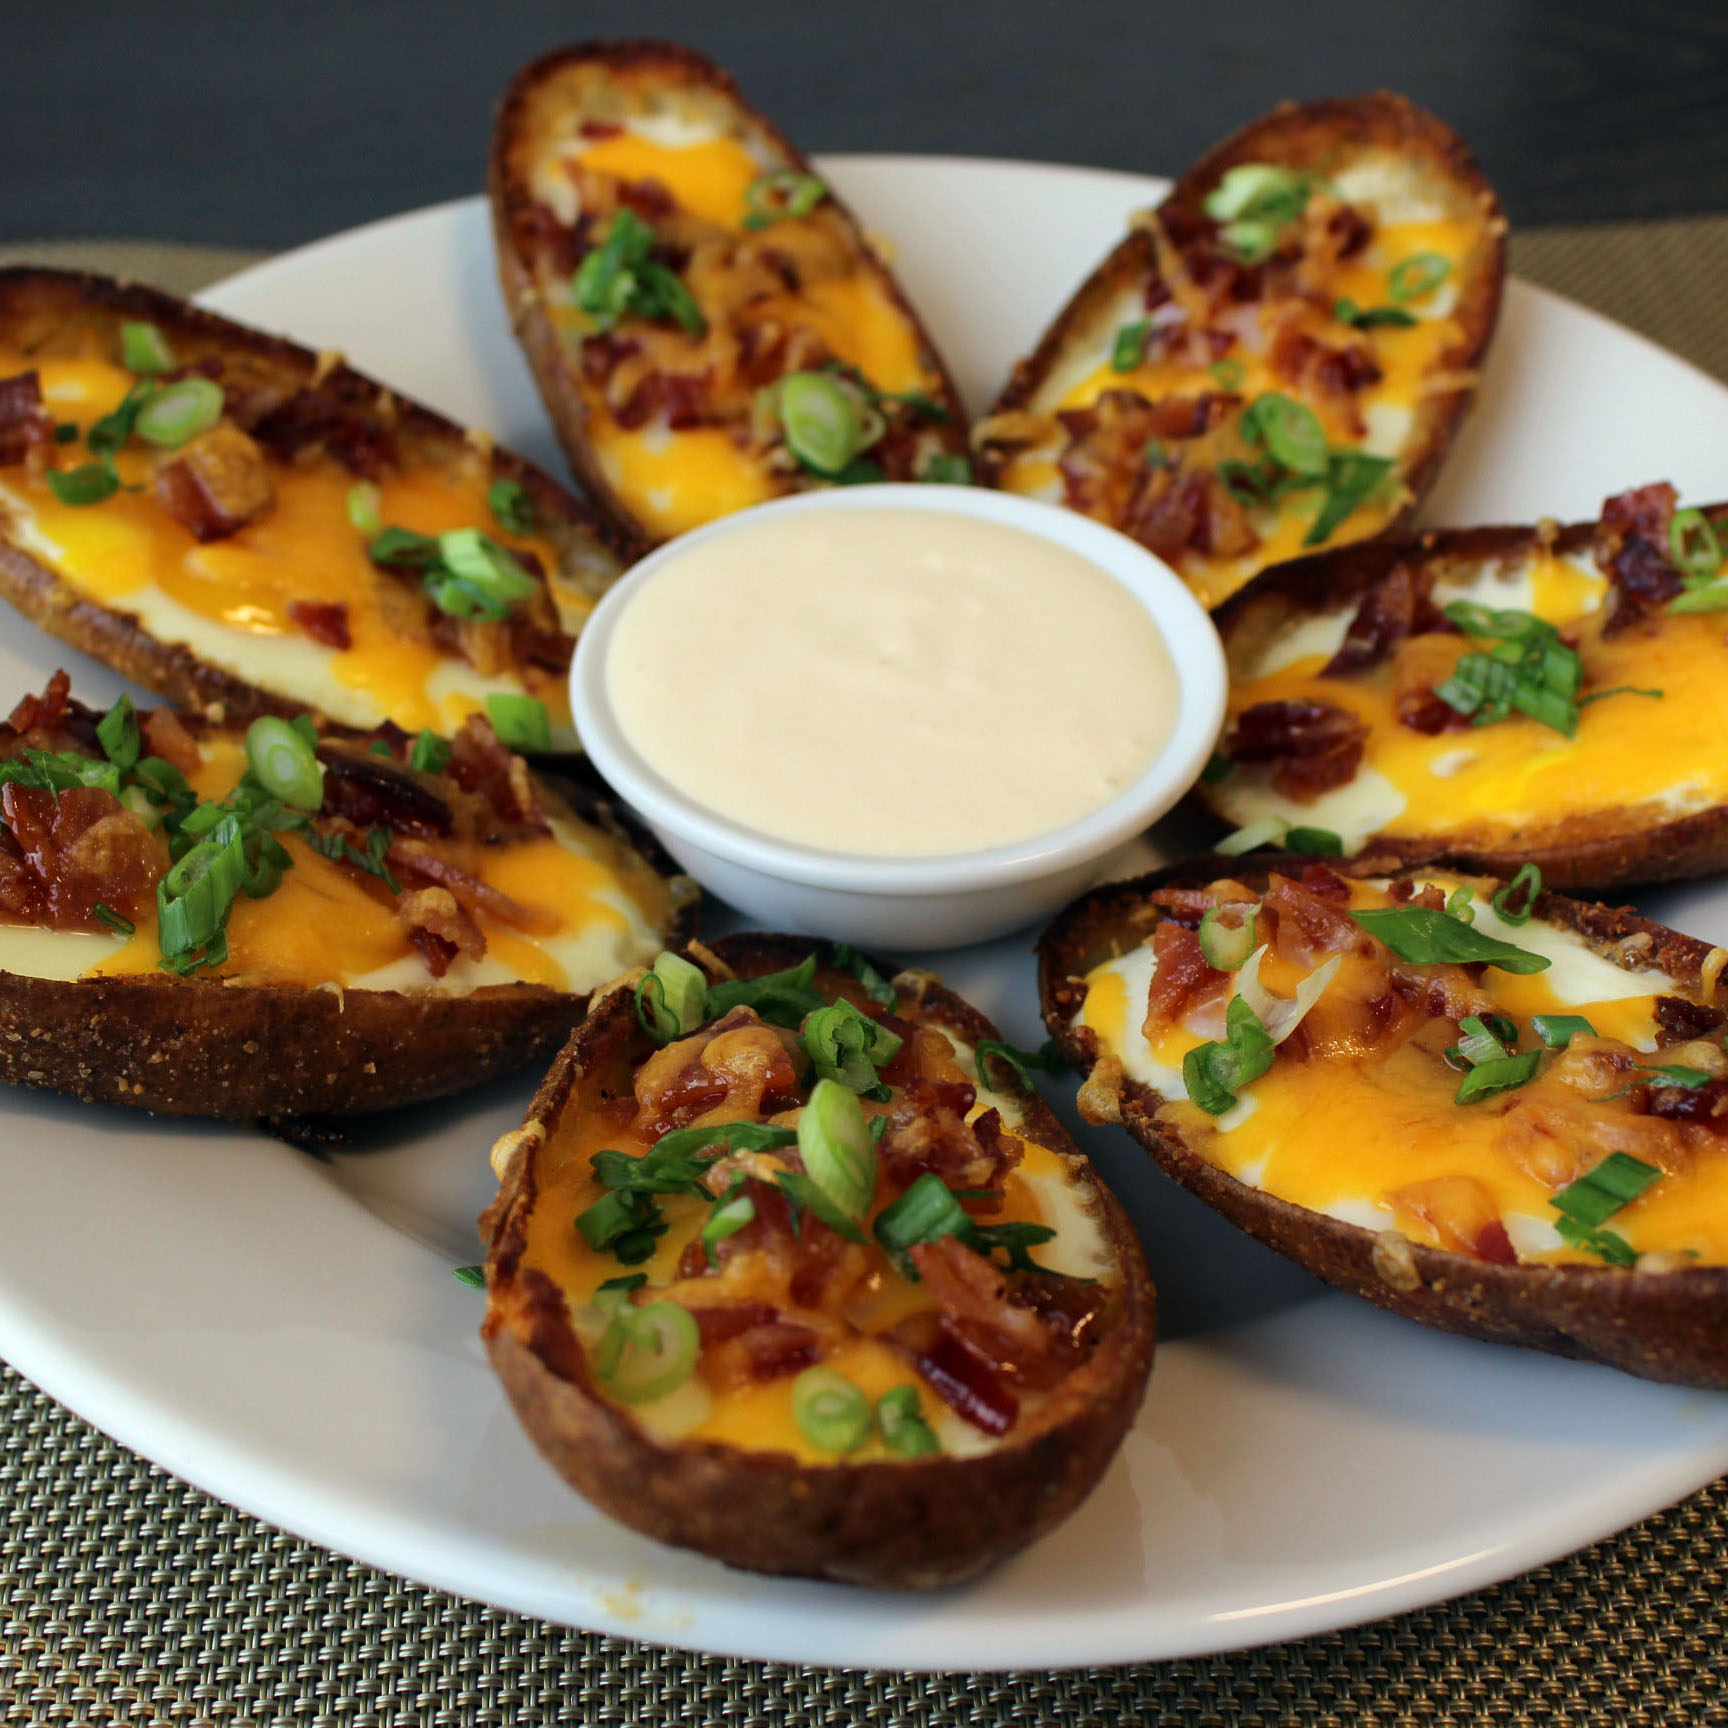 Breakfast Potato Skins Bowls with Peach Sour Cream